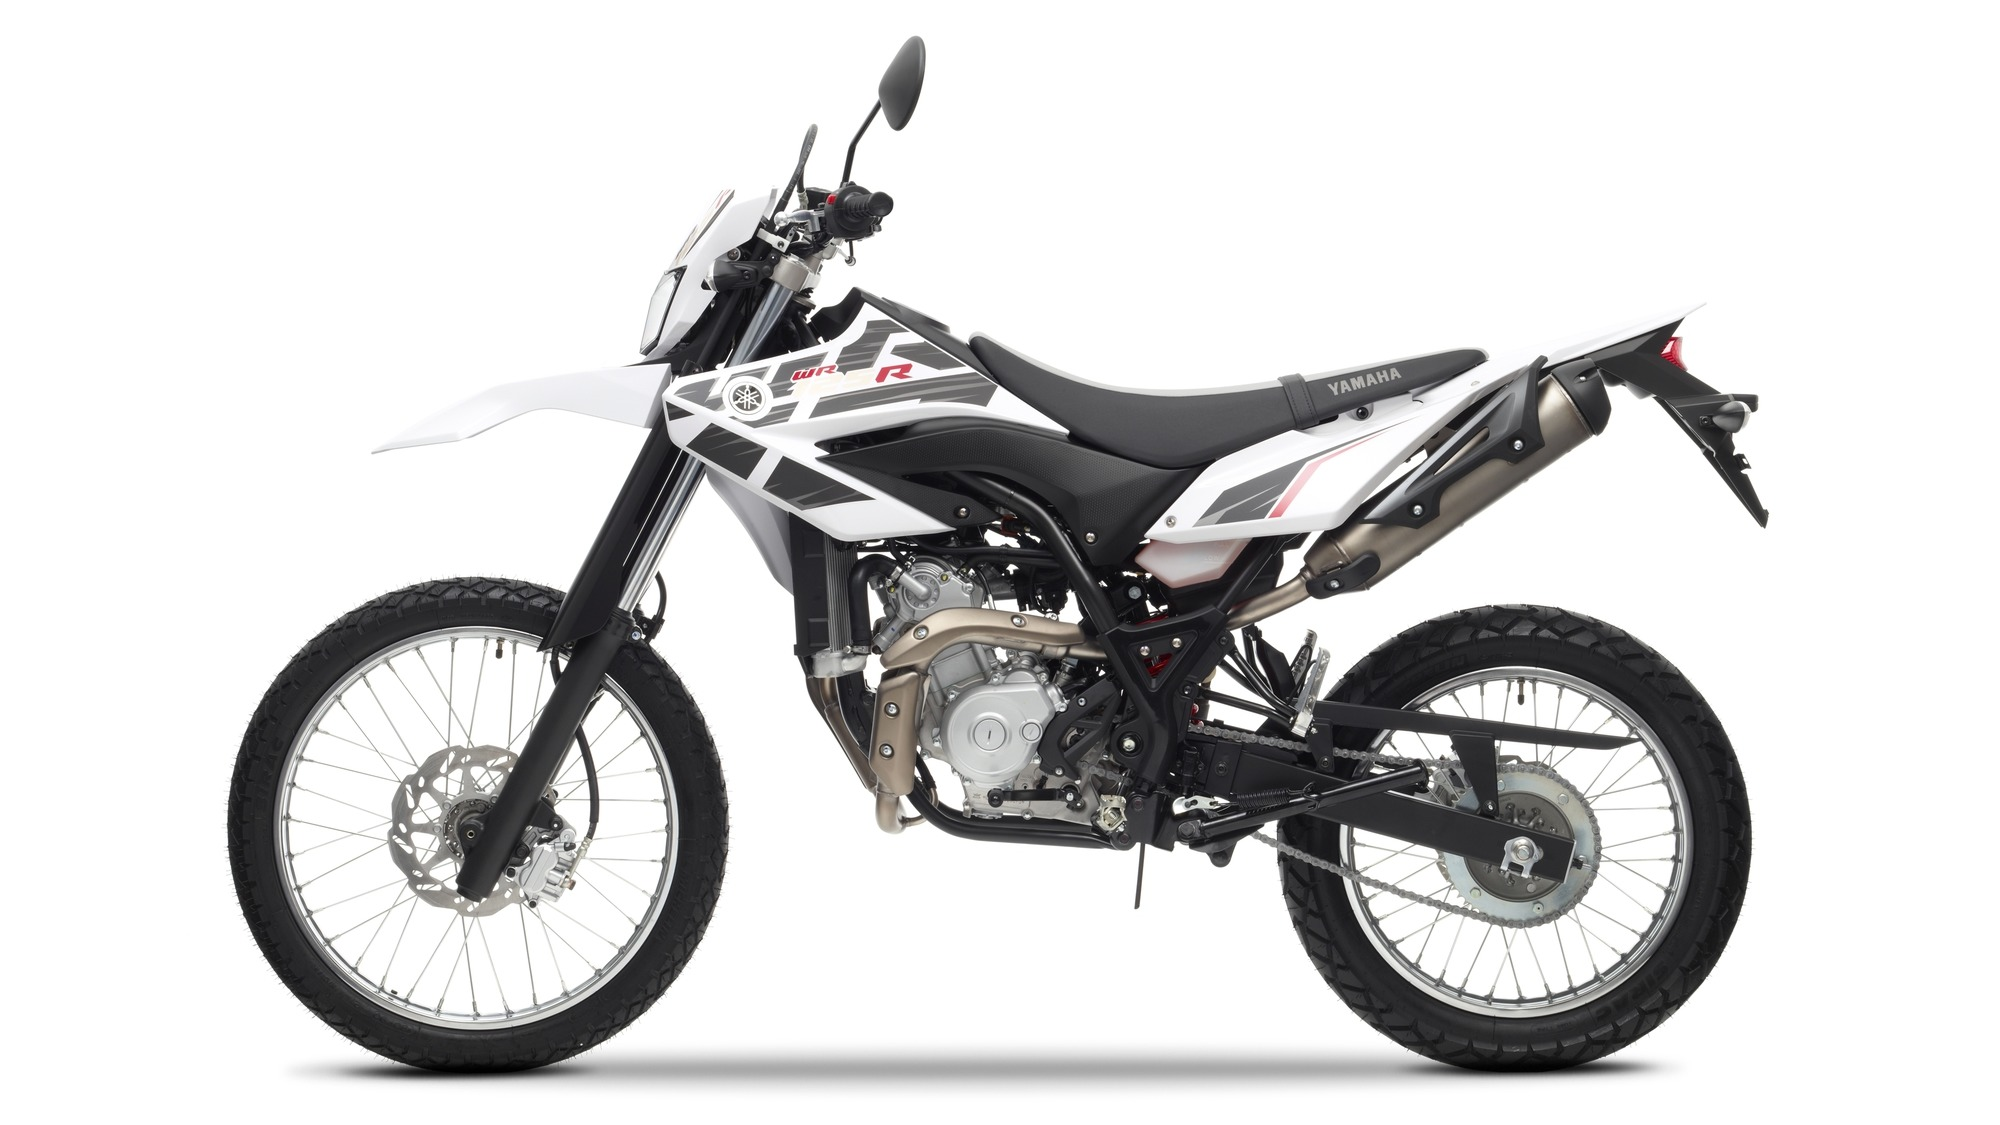 2014 yamaha wr125x moto zombdrive com. Black Bedroom Furniture Sets. Home Design Ideas